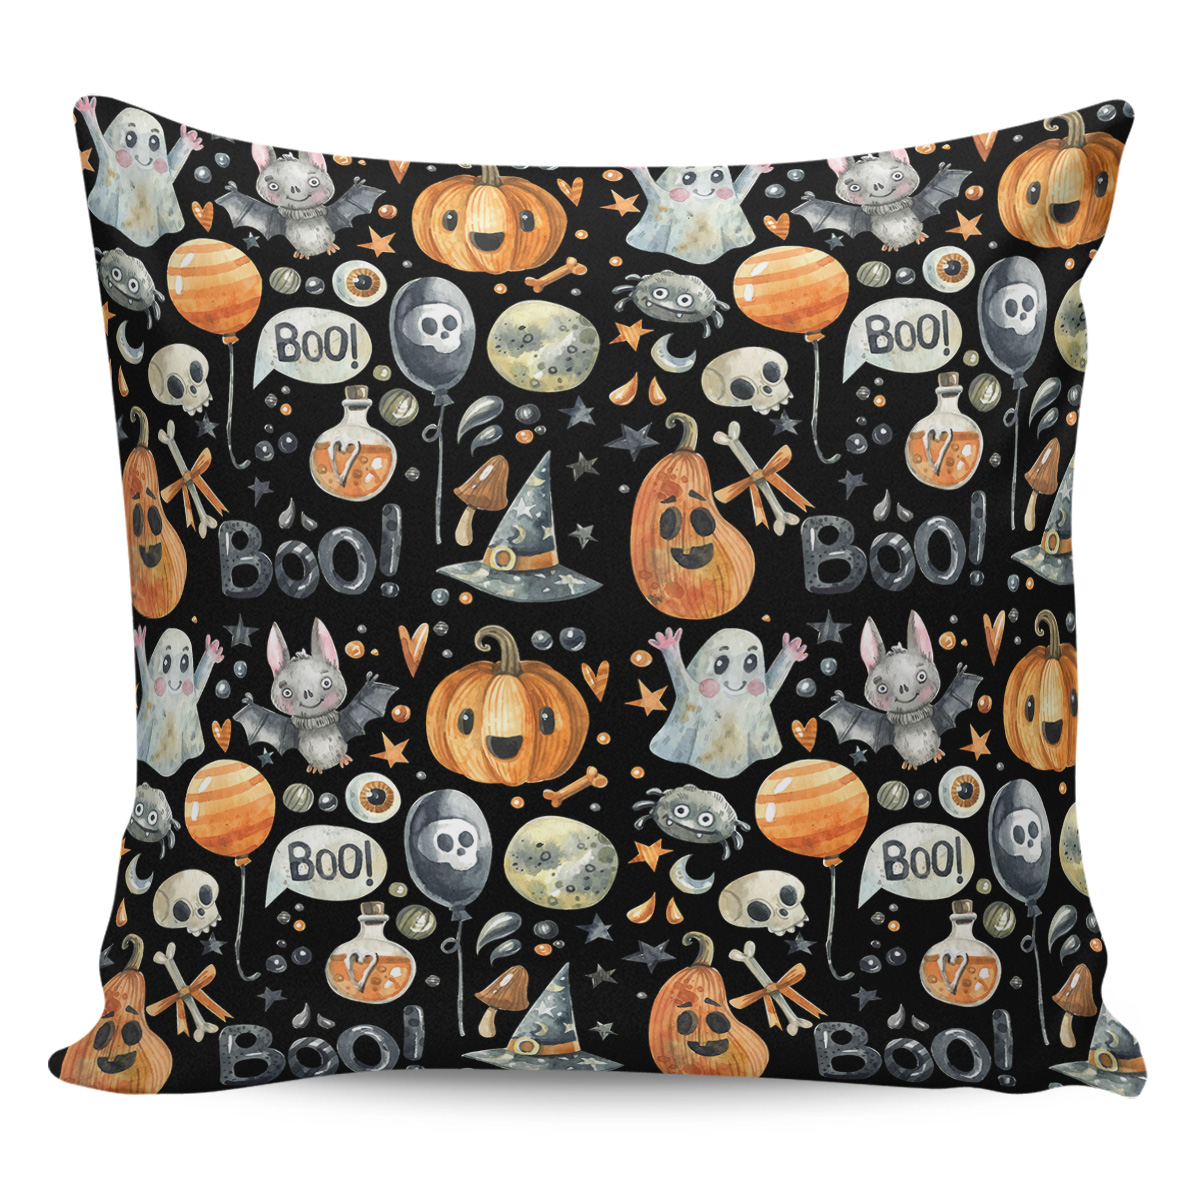 Halloween Pumpkin Ghost Skull Head  Horror Night Pillow Covers Cases Pattern Cover Cushion Pillowcase Square Print|Pillow Case| |  -